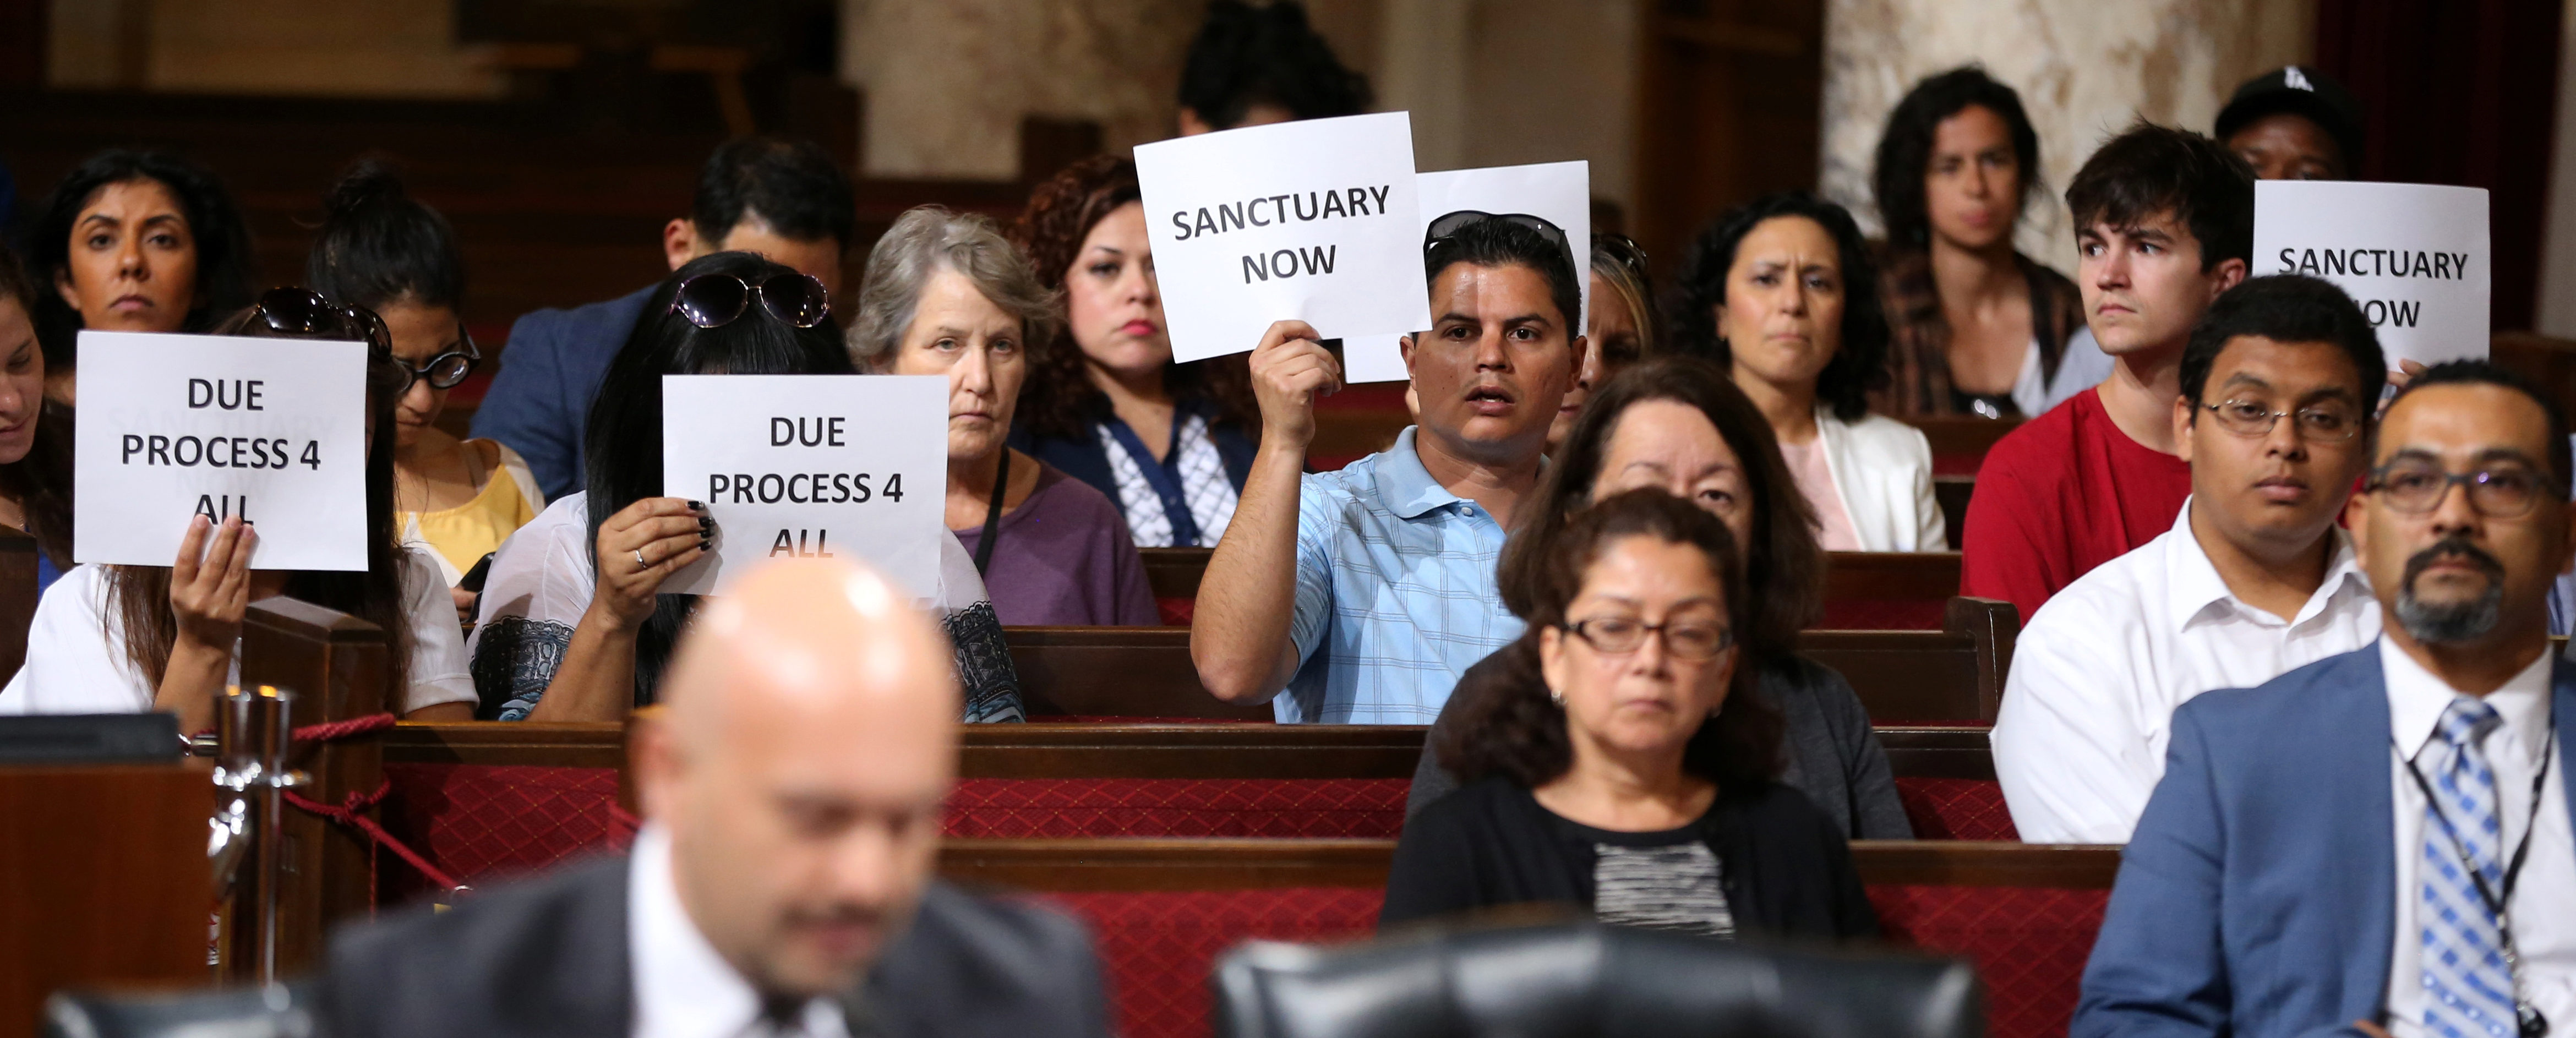 Immigrant supporters protest during the Los Angeles City Council ad hoc committee on immigration meeting to discuss the city's response to threats by the Trump administration to cut funding from Los Angeles and other jurisdictions which federal officials say are providing sanctuary to illegal immigrants arrested for crimes, in Los Angeles, California, U.S., March 30, 2017. REUTERS/Lucy Nicholson